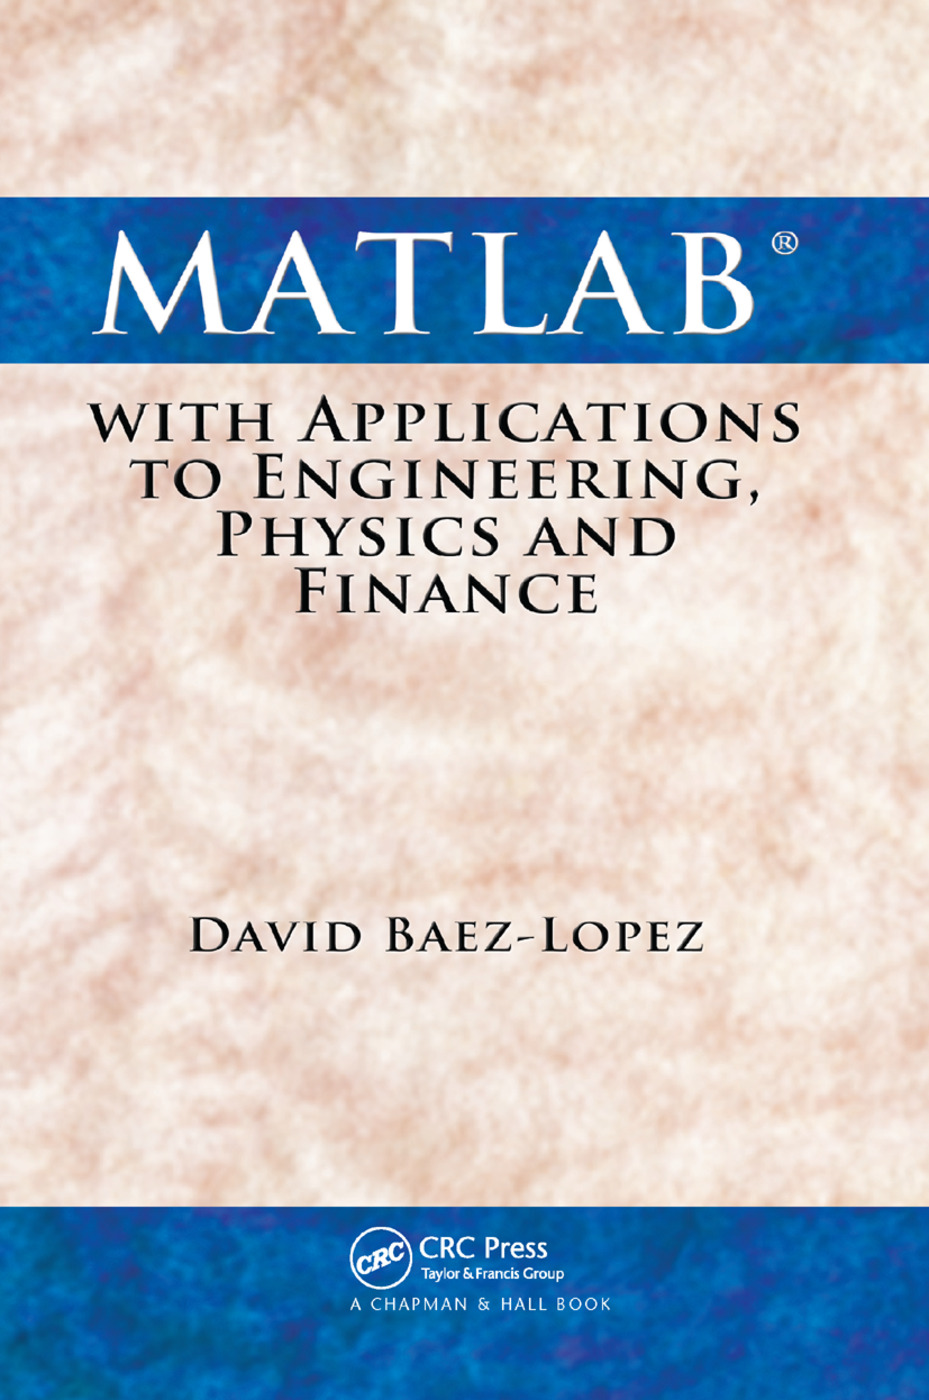 MATLAB with Applications to Engineering, Physics and Finance: 1st Edition (Paperback) book cover